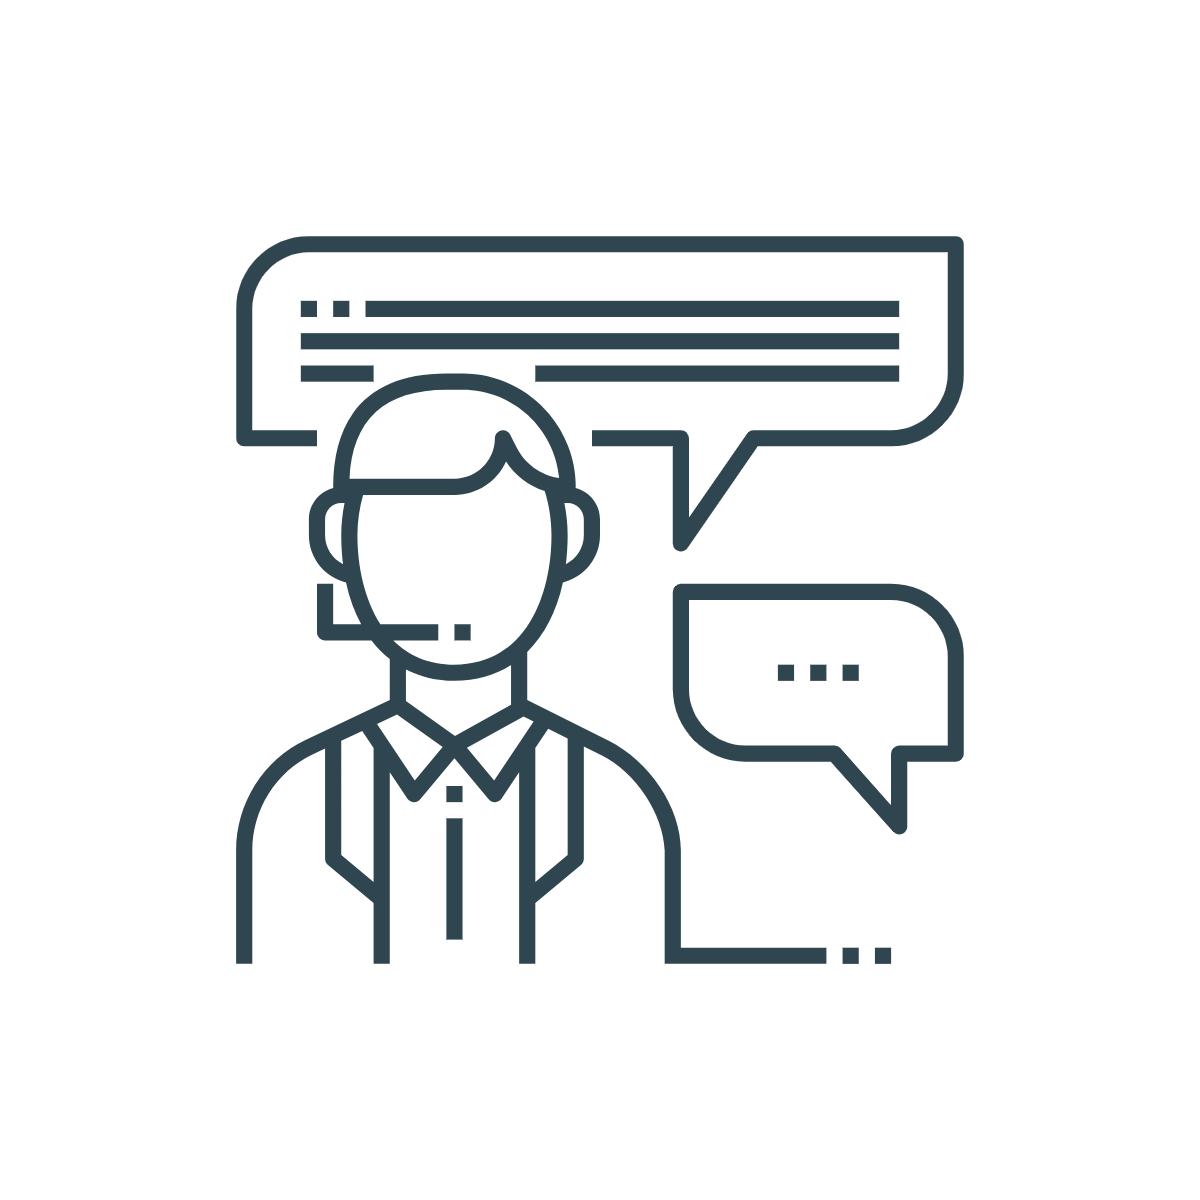 icon of support agent communicating